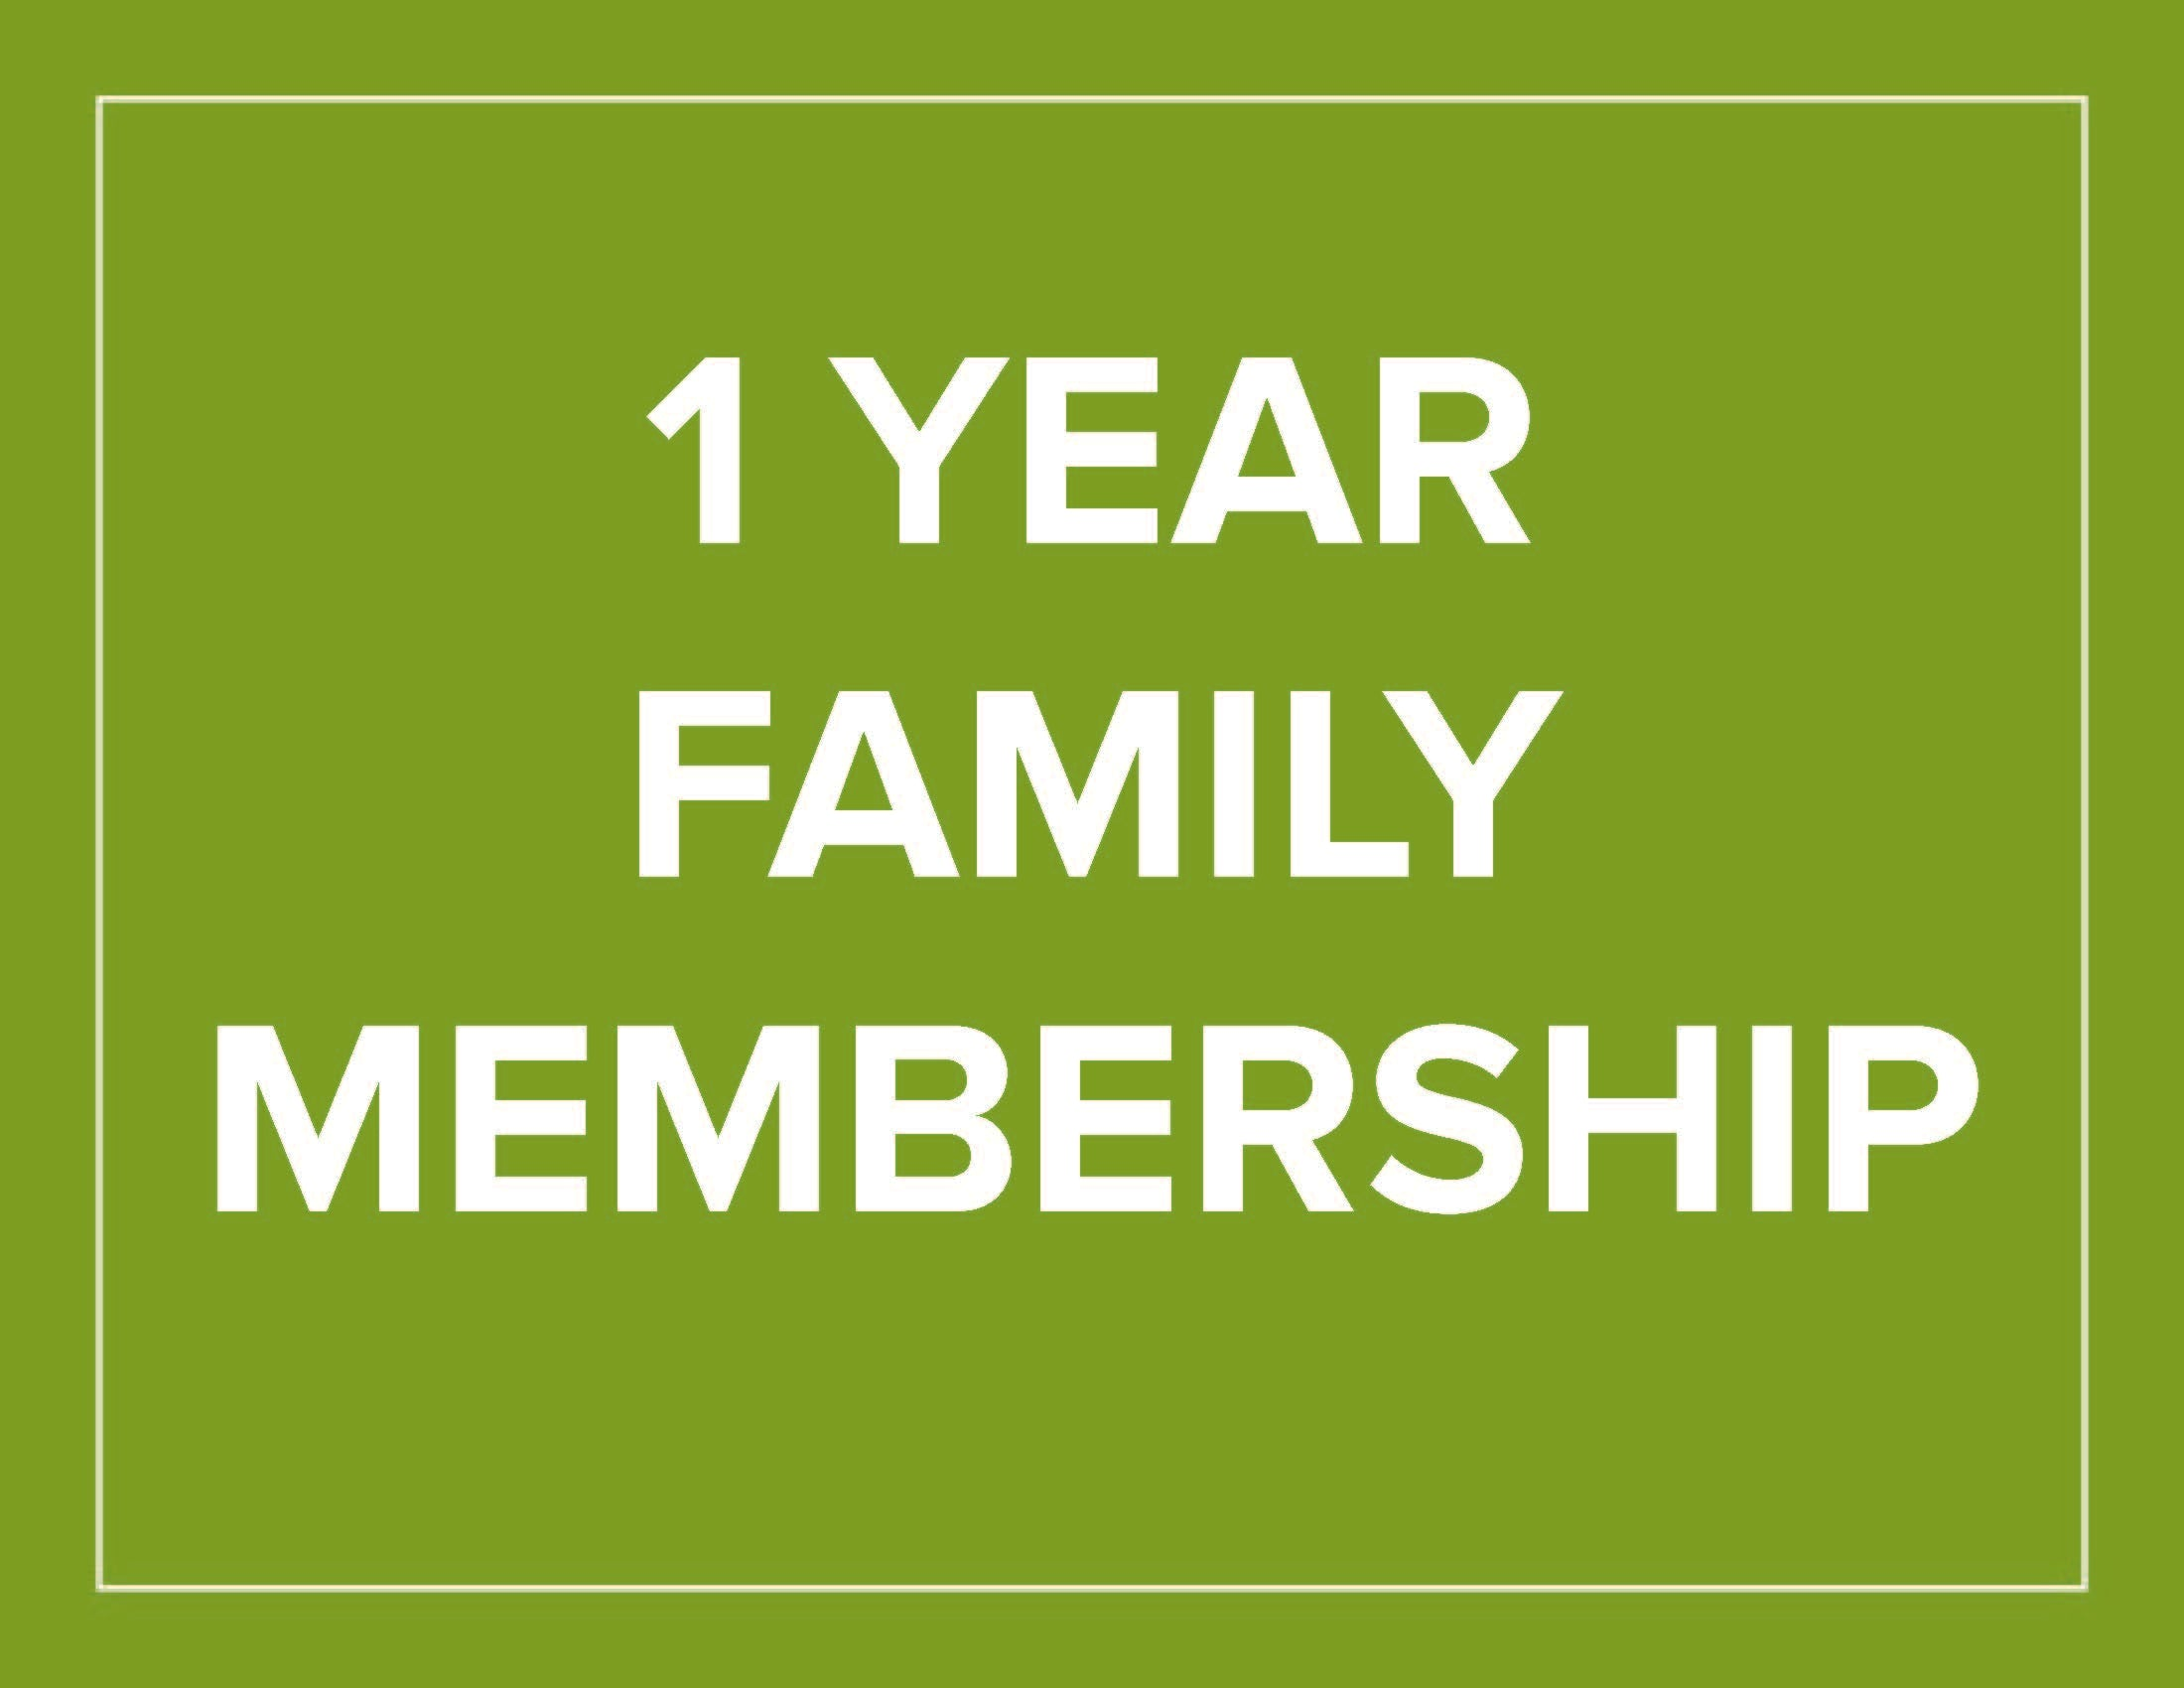 1 Year Family Membership